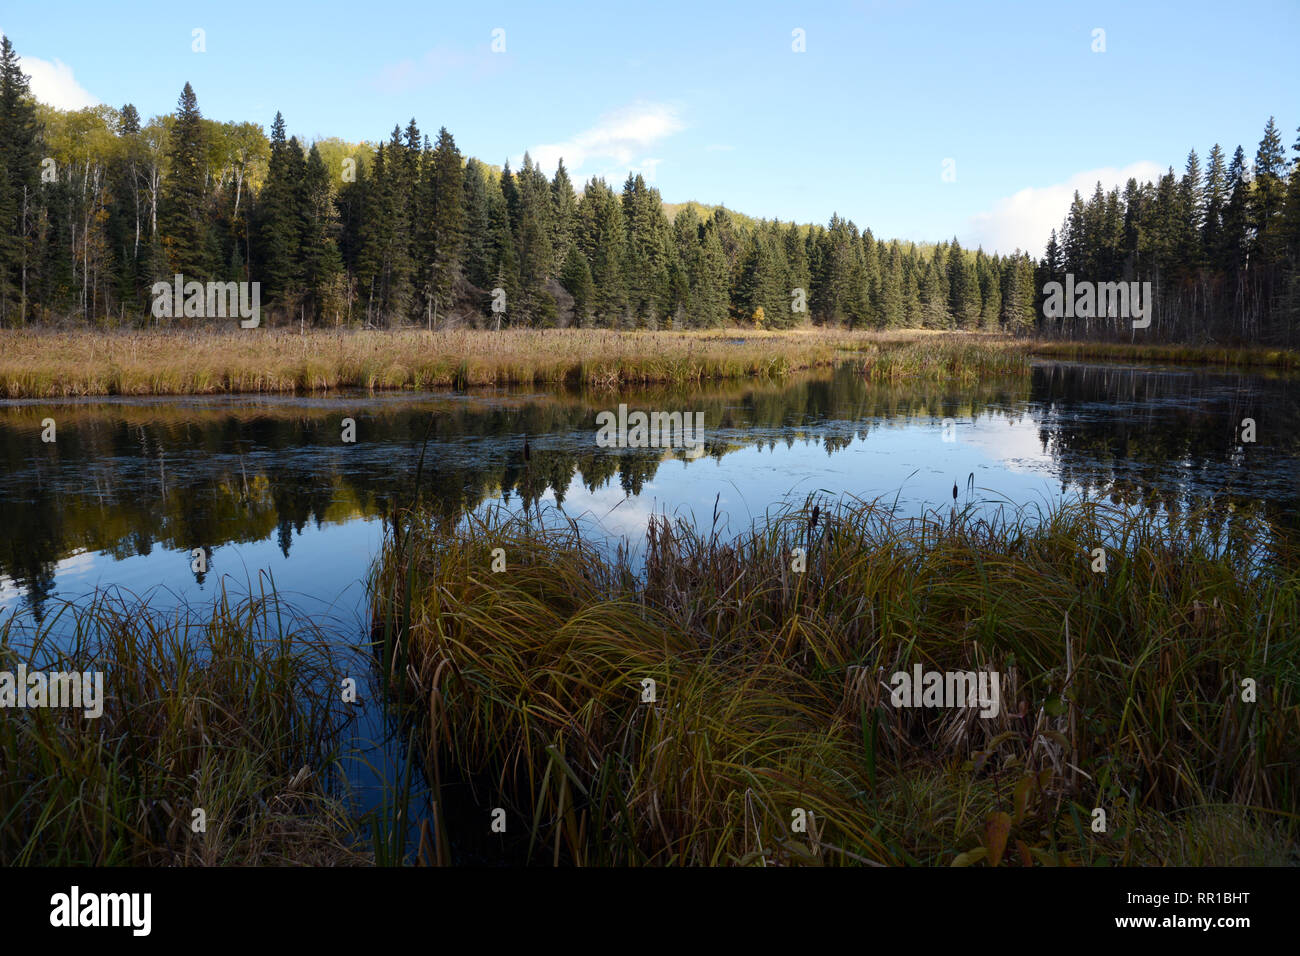 A coniferous forest at dusk on the marshy banks of Waskesiu Lake in Prince Albert National Park in northern Saskatchewan, Canada. - Stock Image